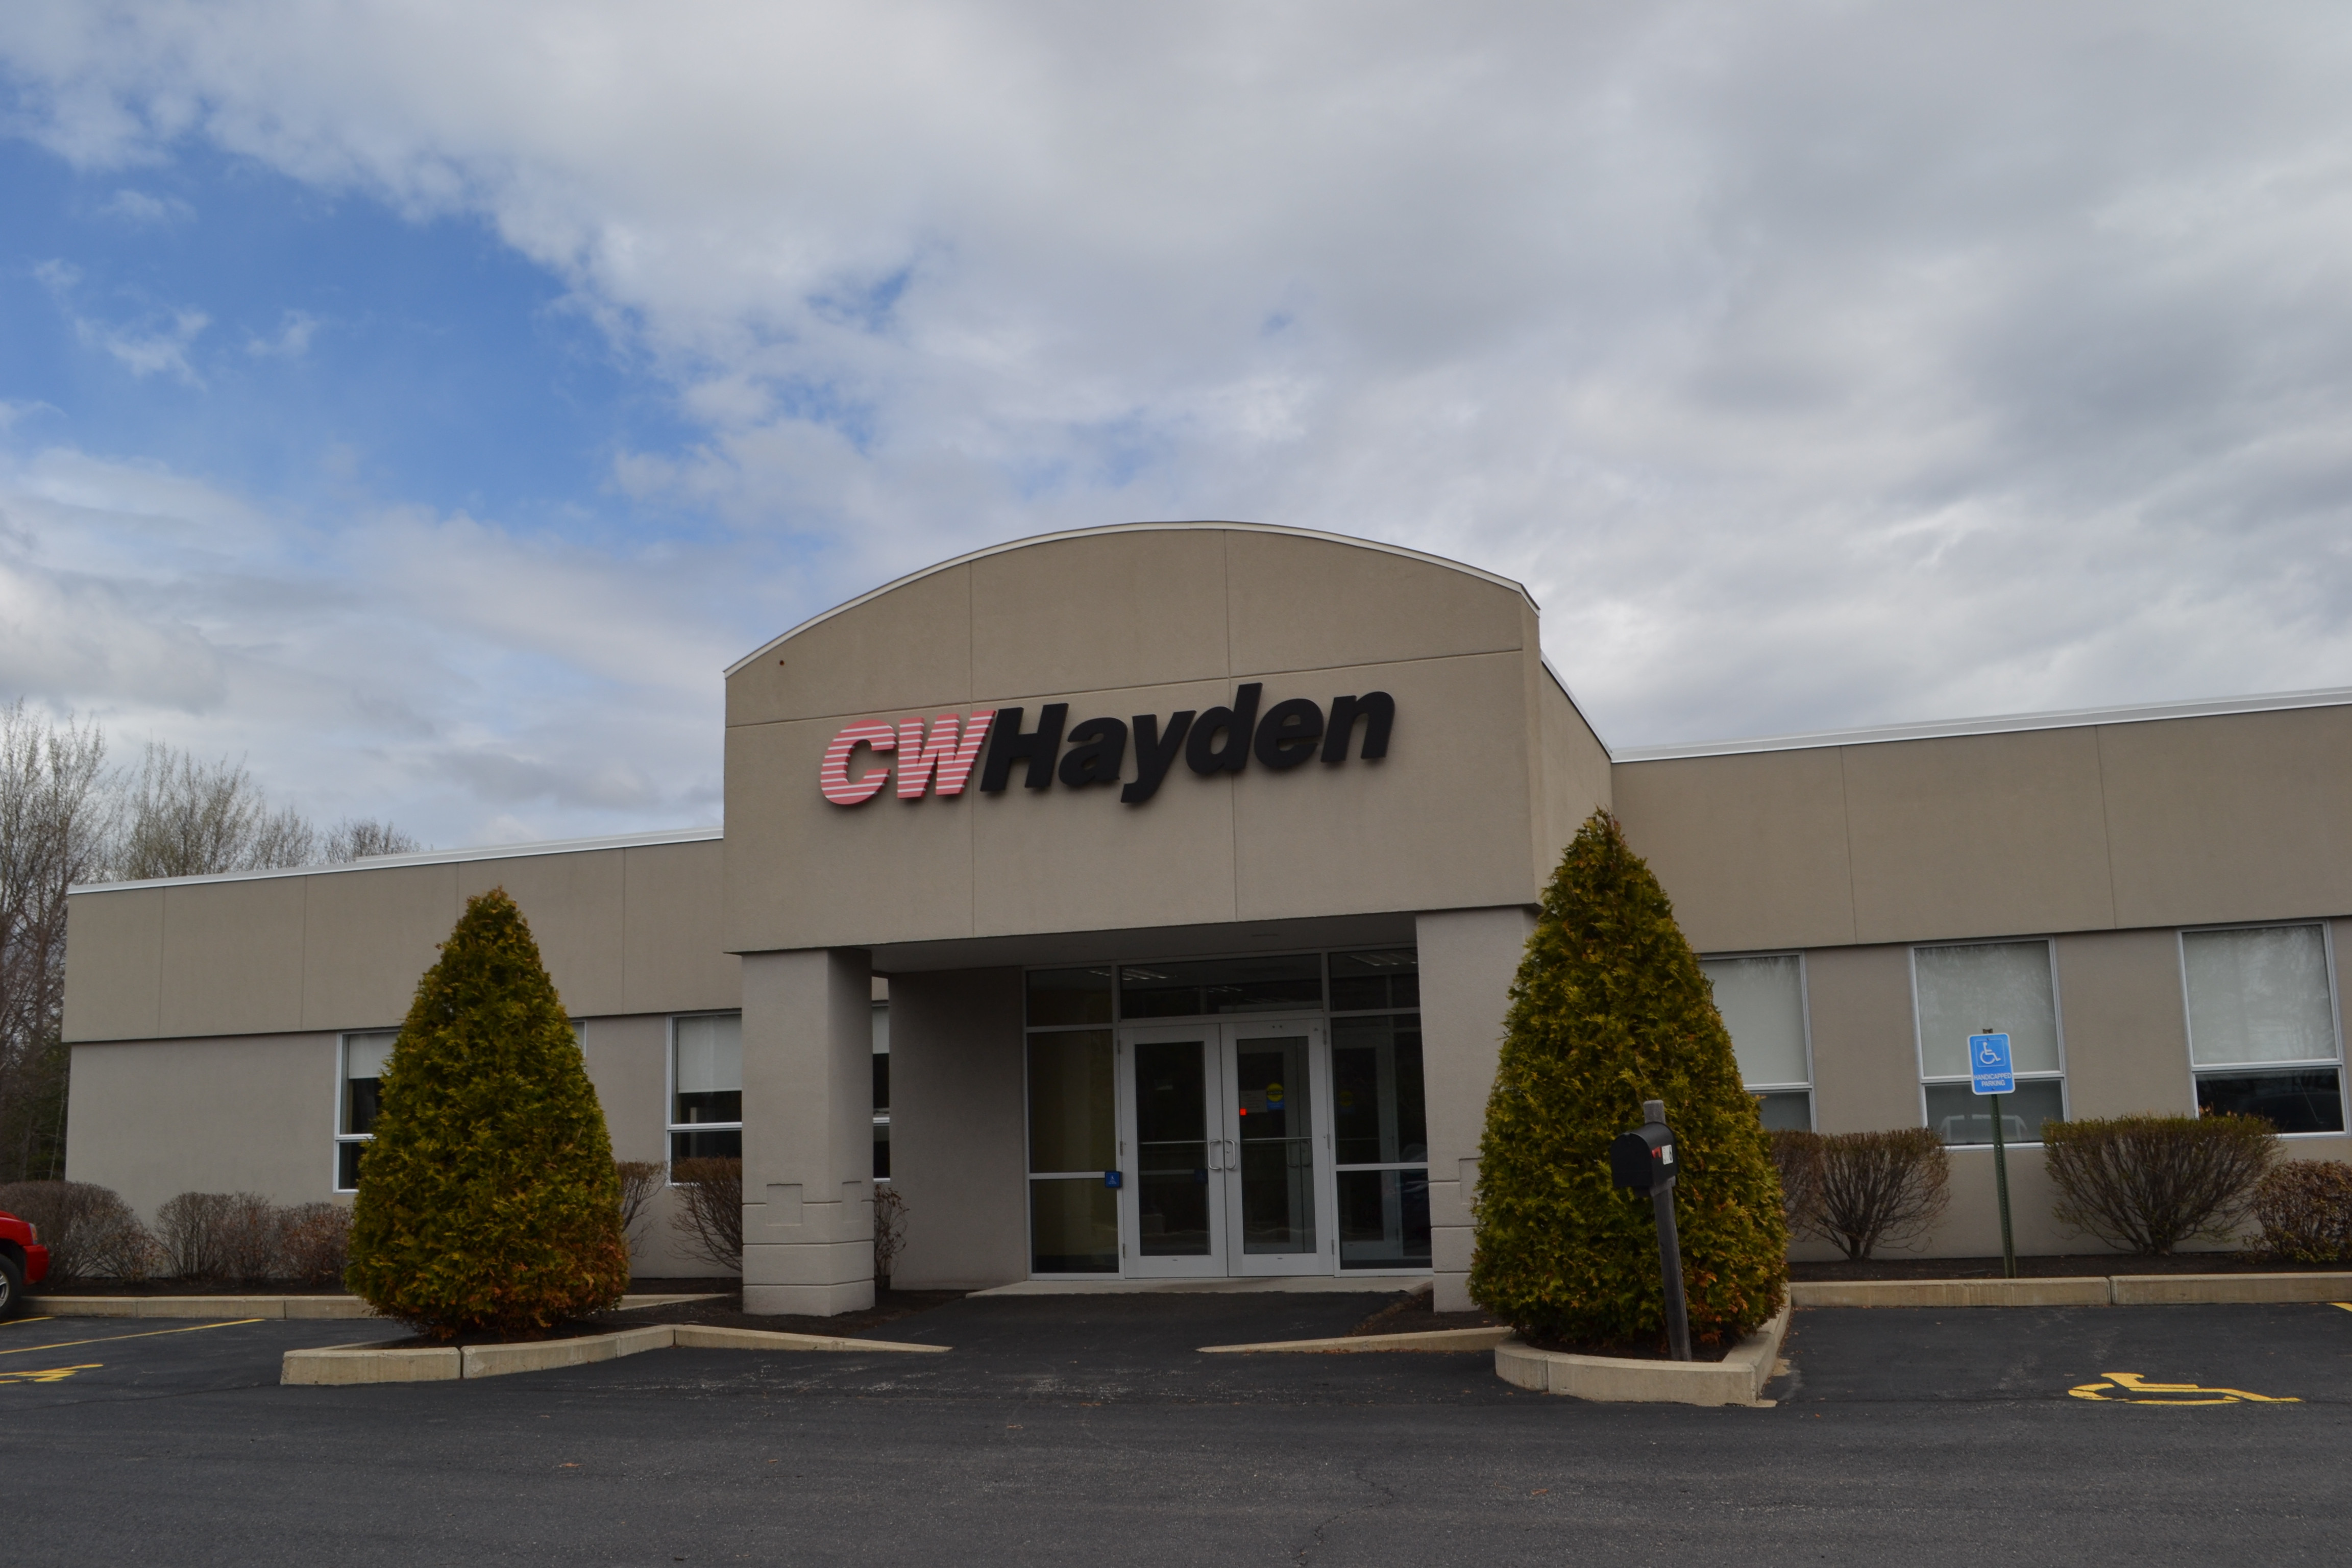 ALCOM Looks To CW Hayden As Key Industrial, Safety Distributor